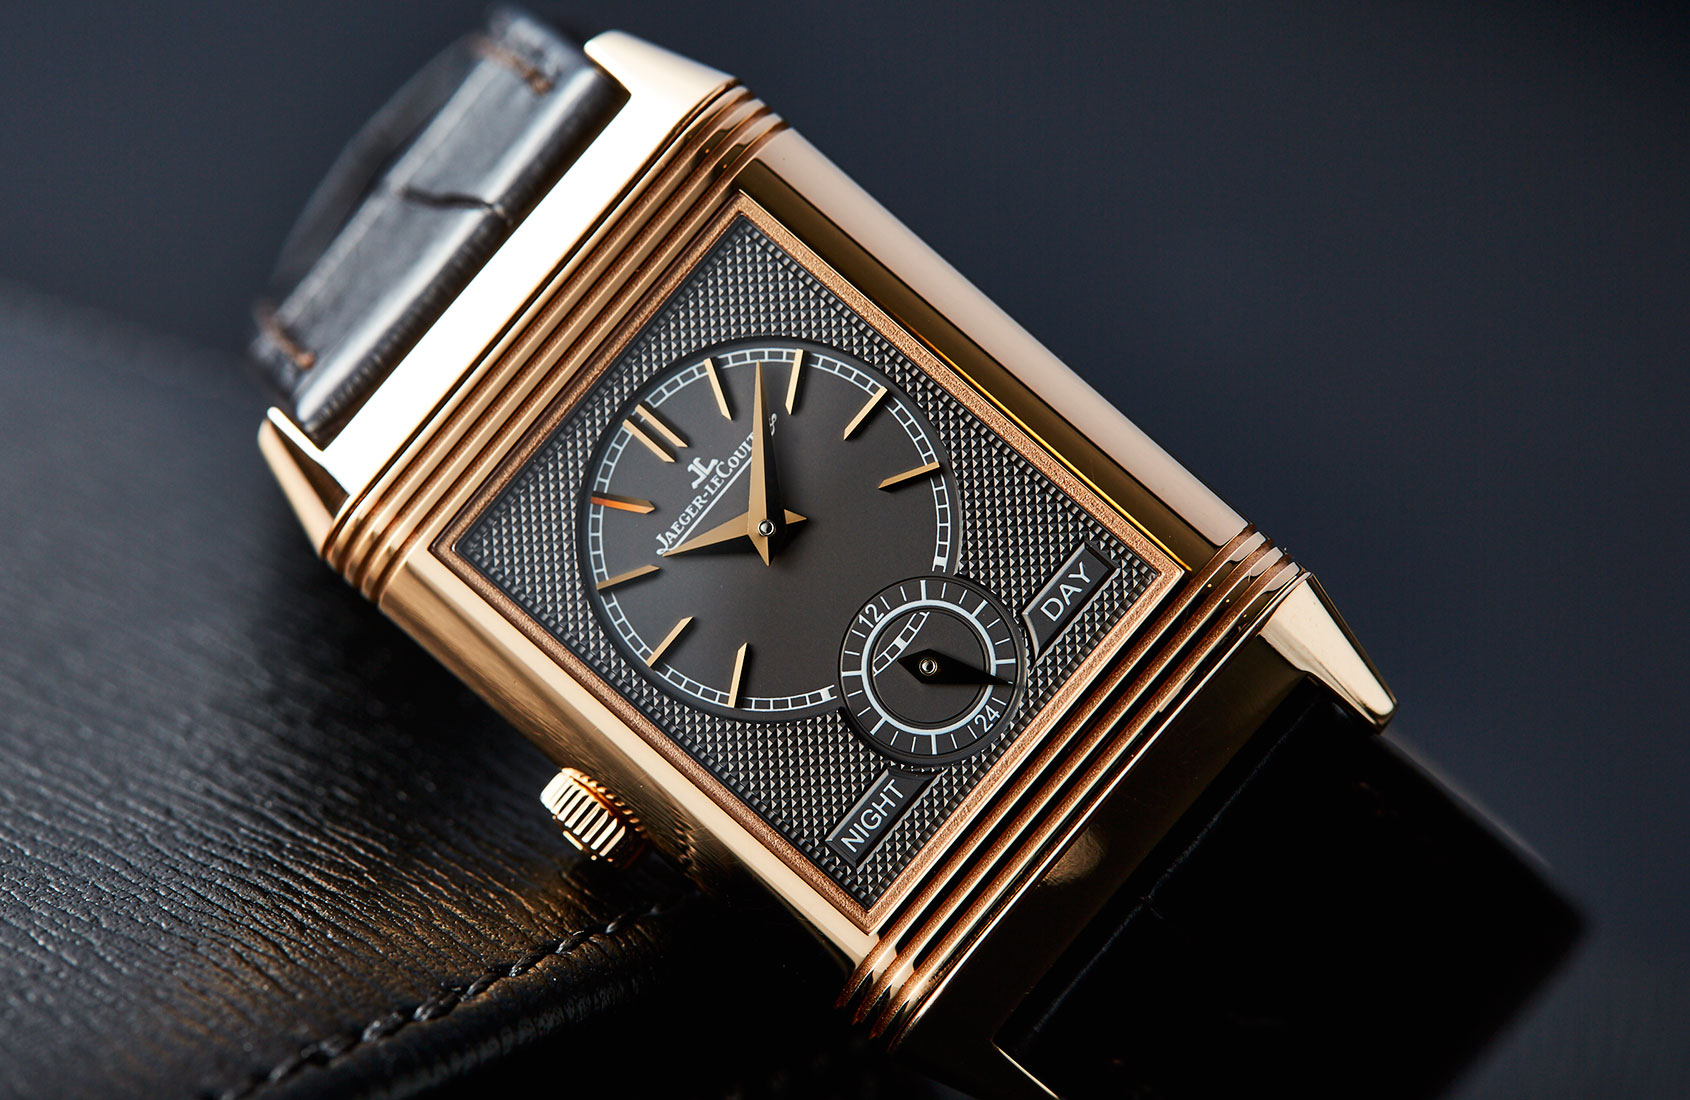 532d48156973 Jaeger-LeCoultre Reverso Tribute Duoface in Pink Gold – Hands-on Review